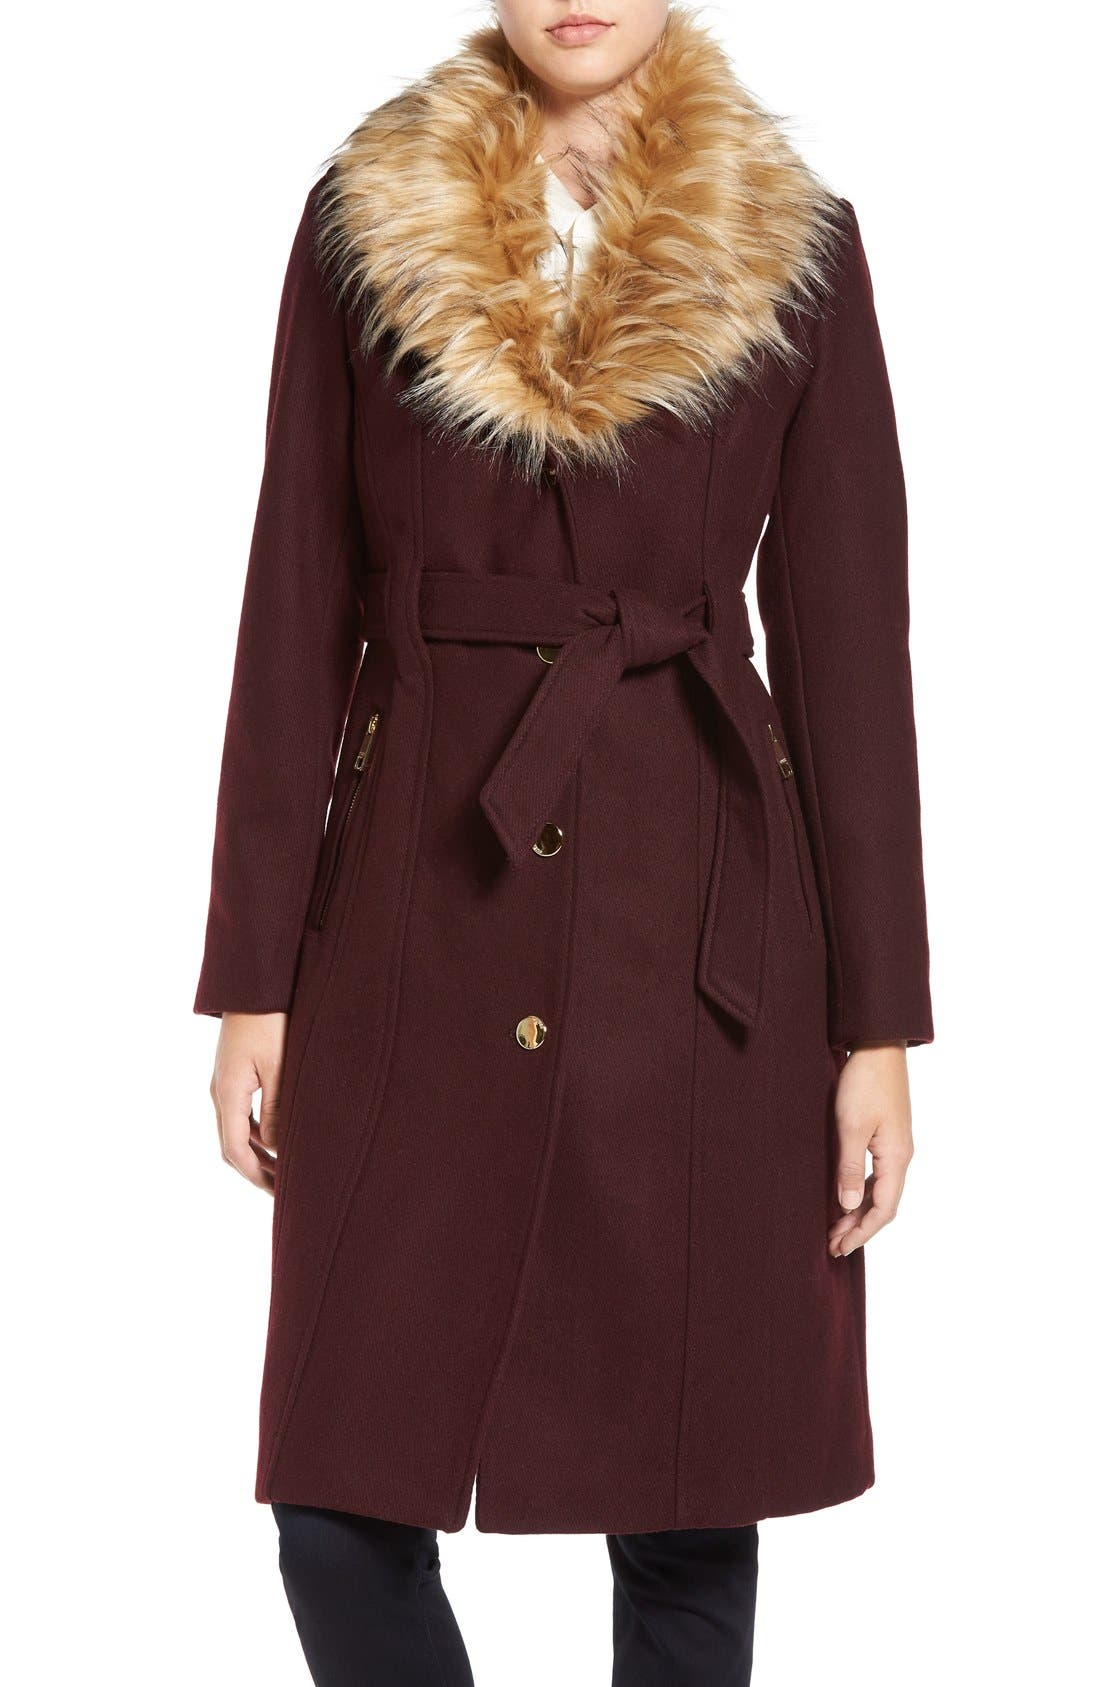 GUESS,                             Trench Coat with Faux Fur Trim,                             Main thumbnail 1, color,                             240